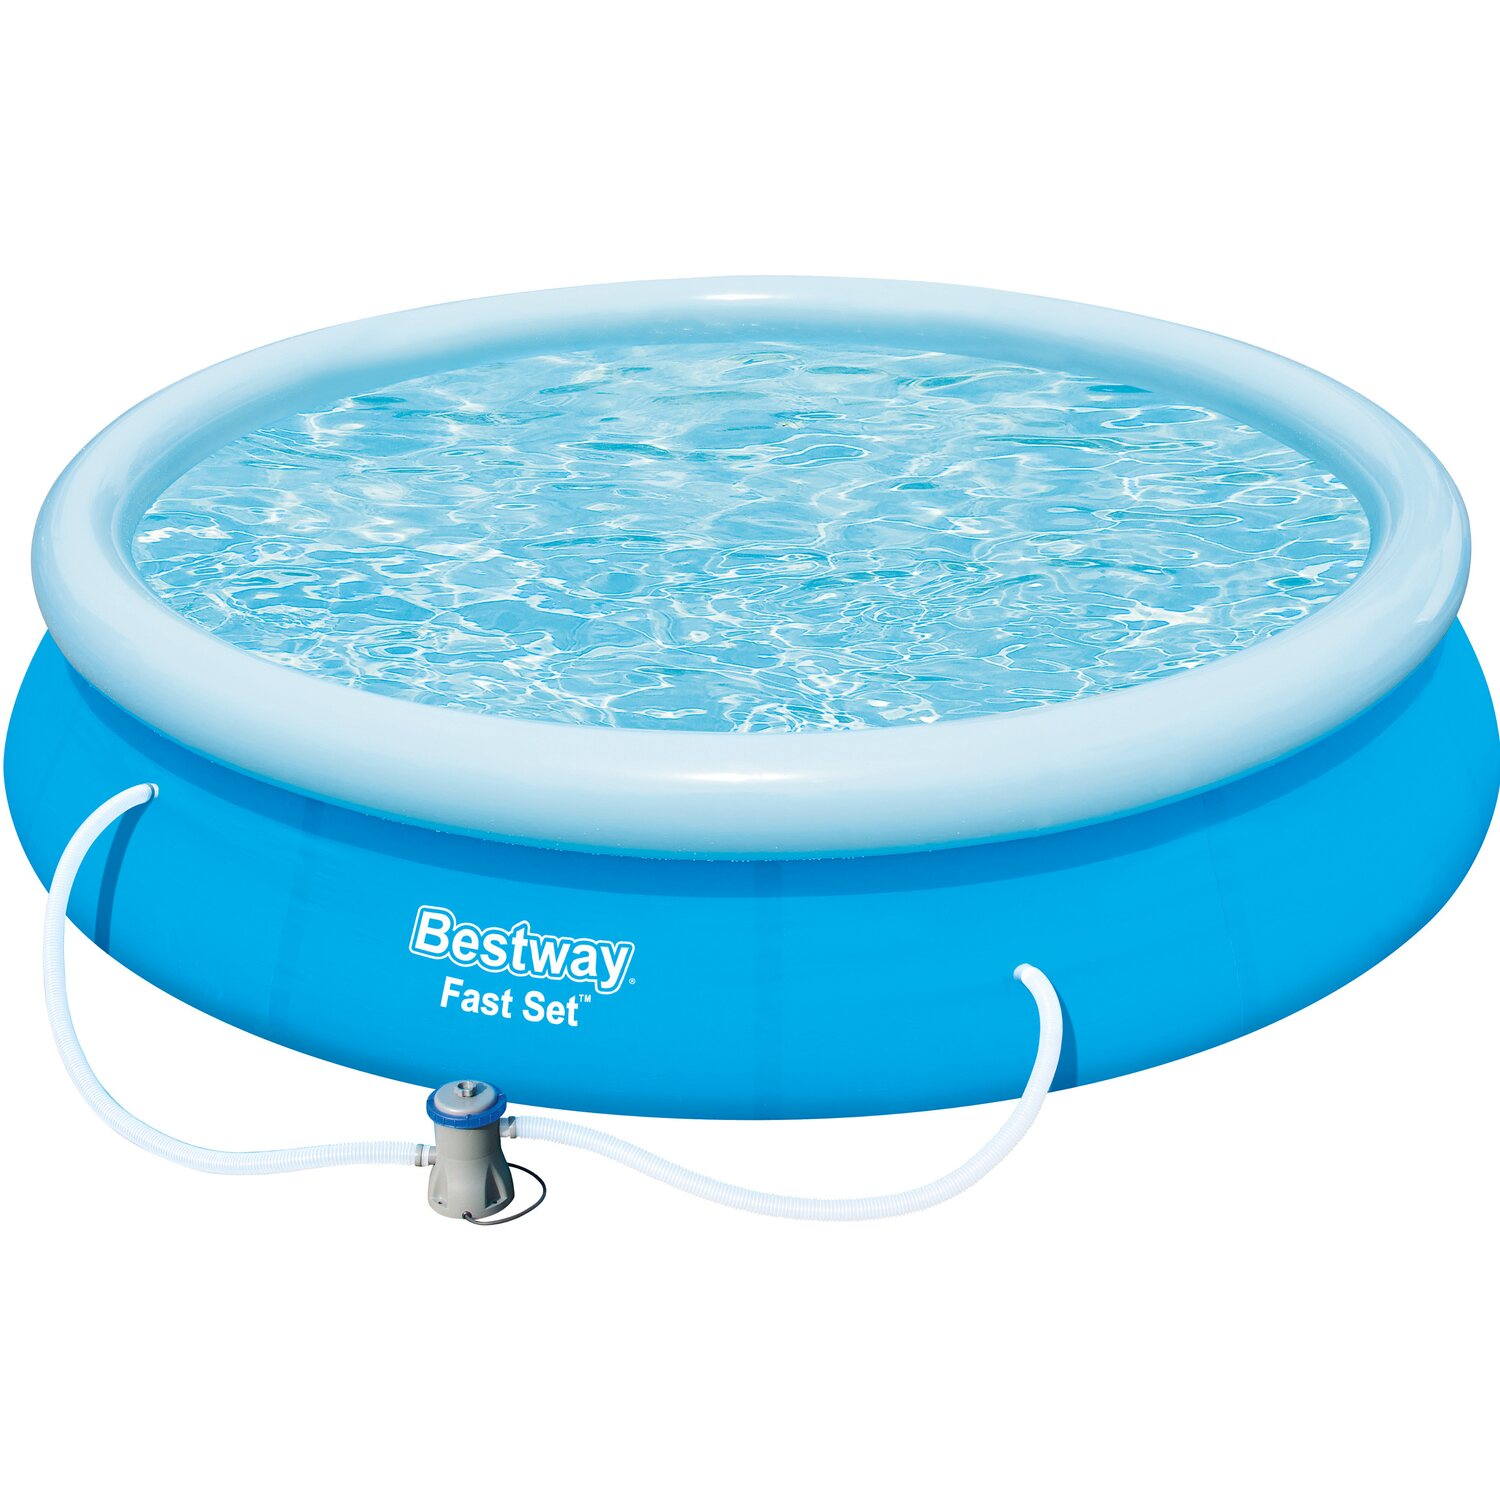 Bestway fast set pool 366 cm x 76 cm kaufen bei obi for Pool obi baumarkt